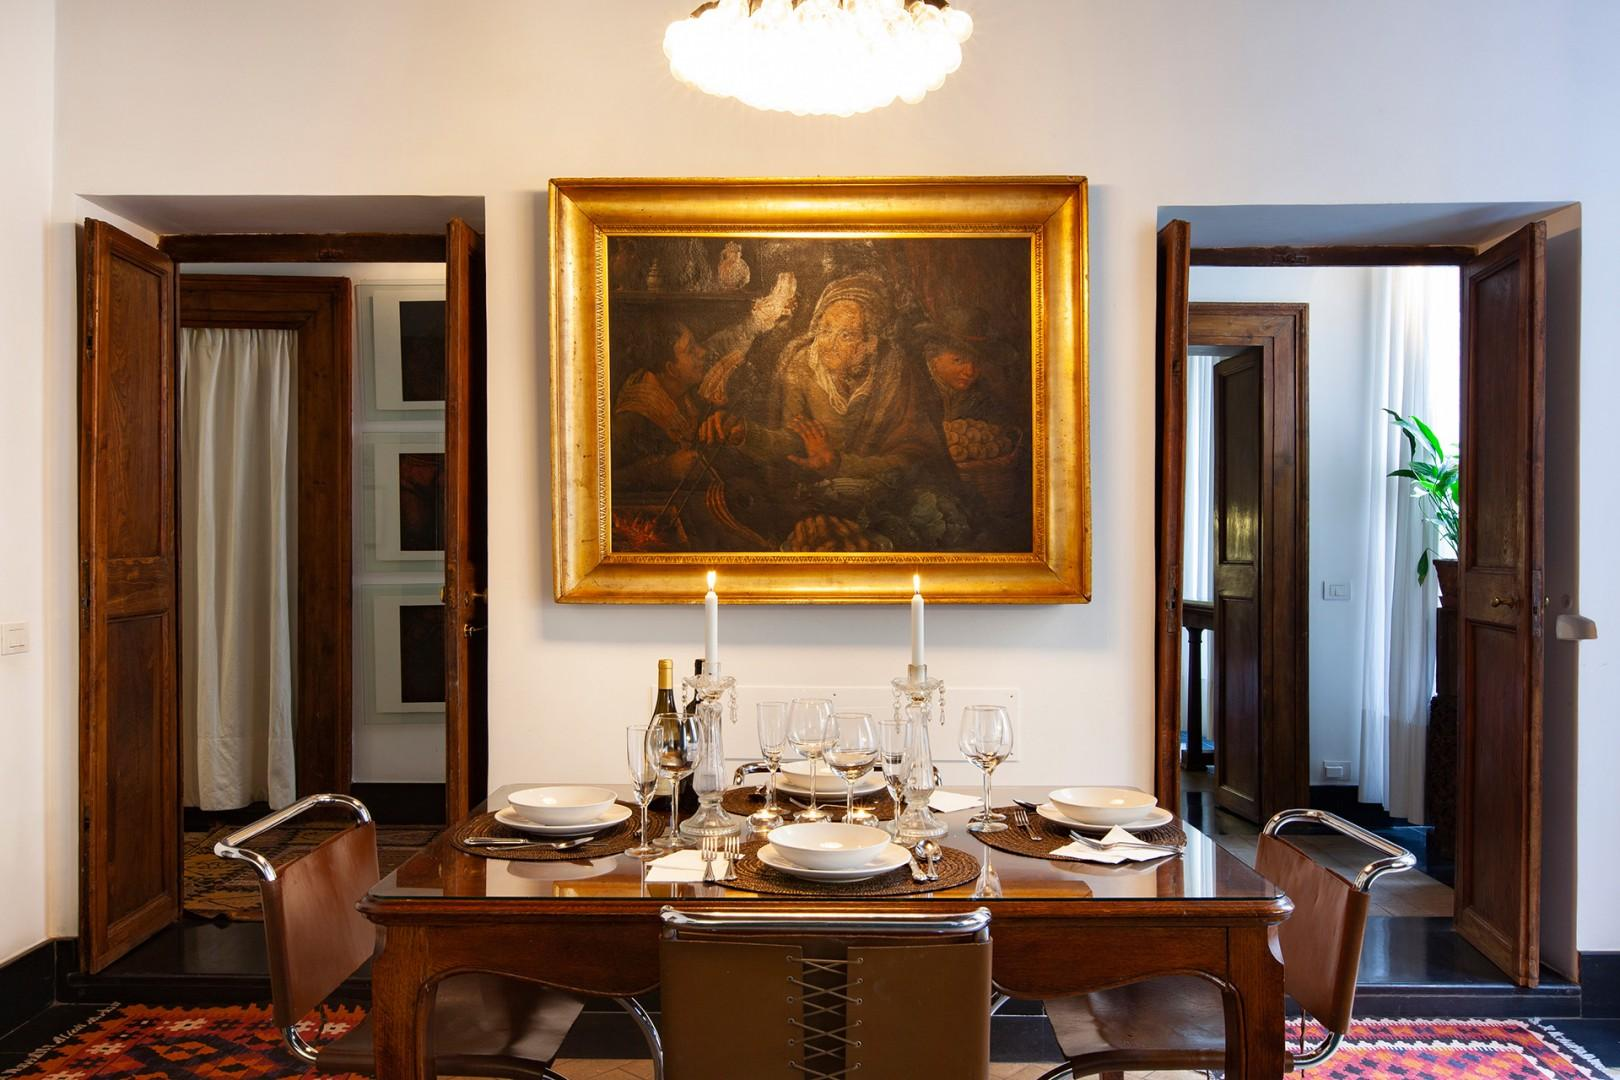 Refined artwork and tasteful antiques.